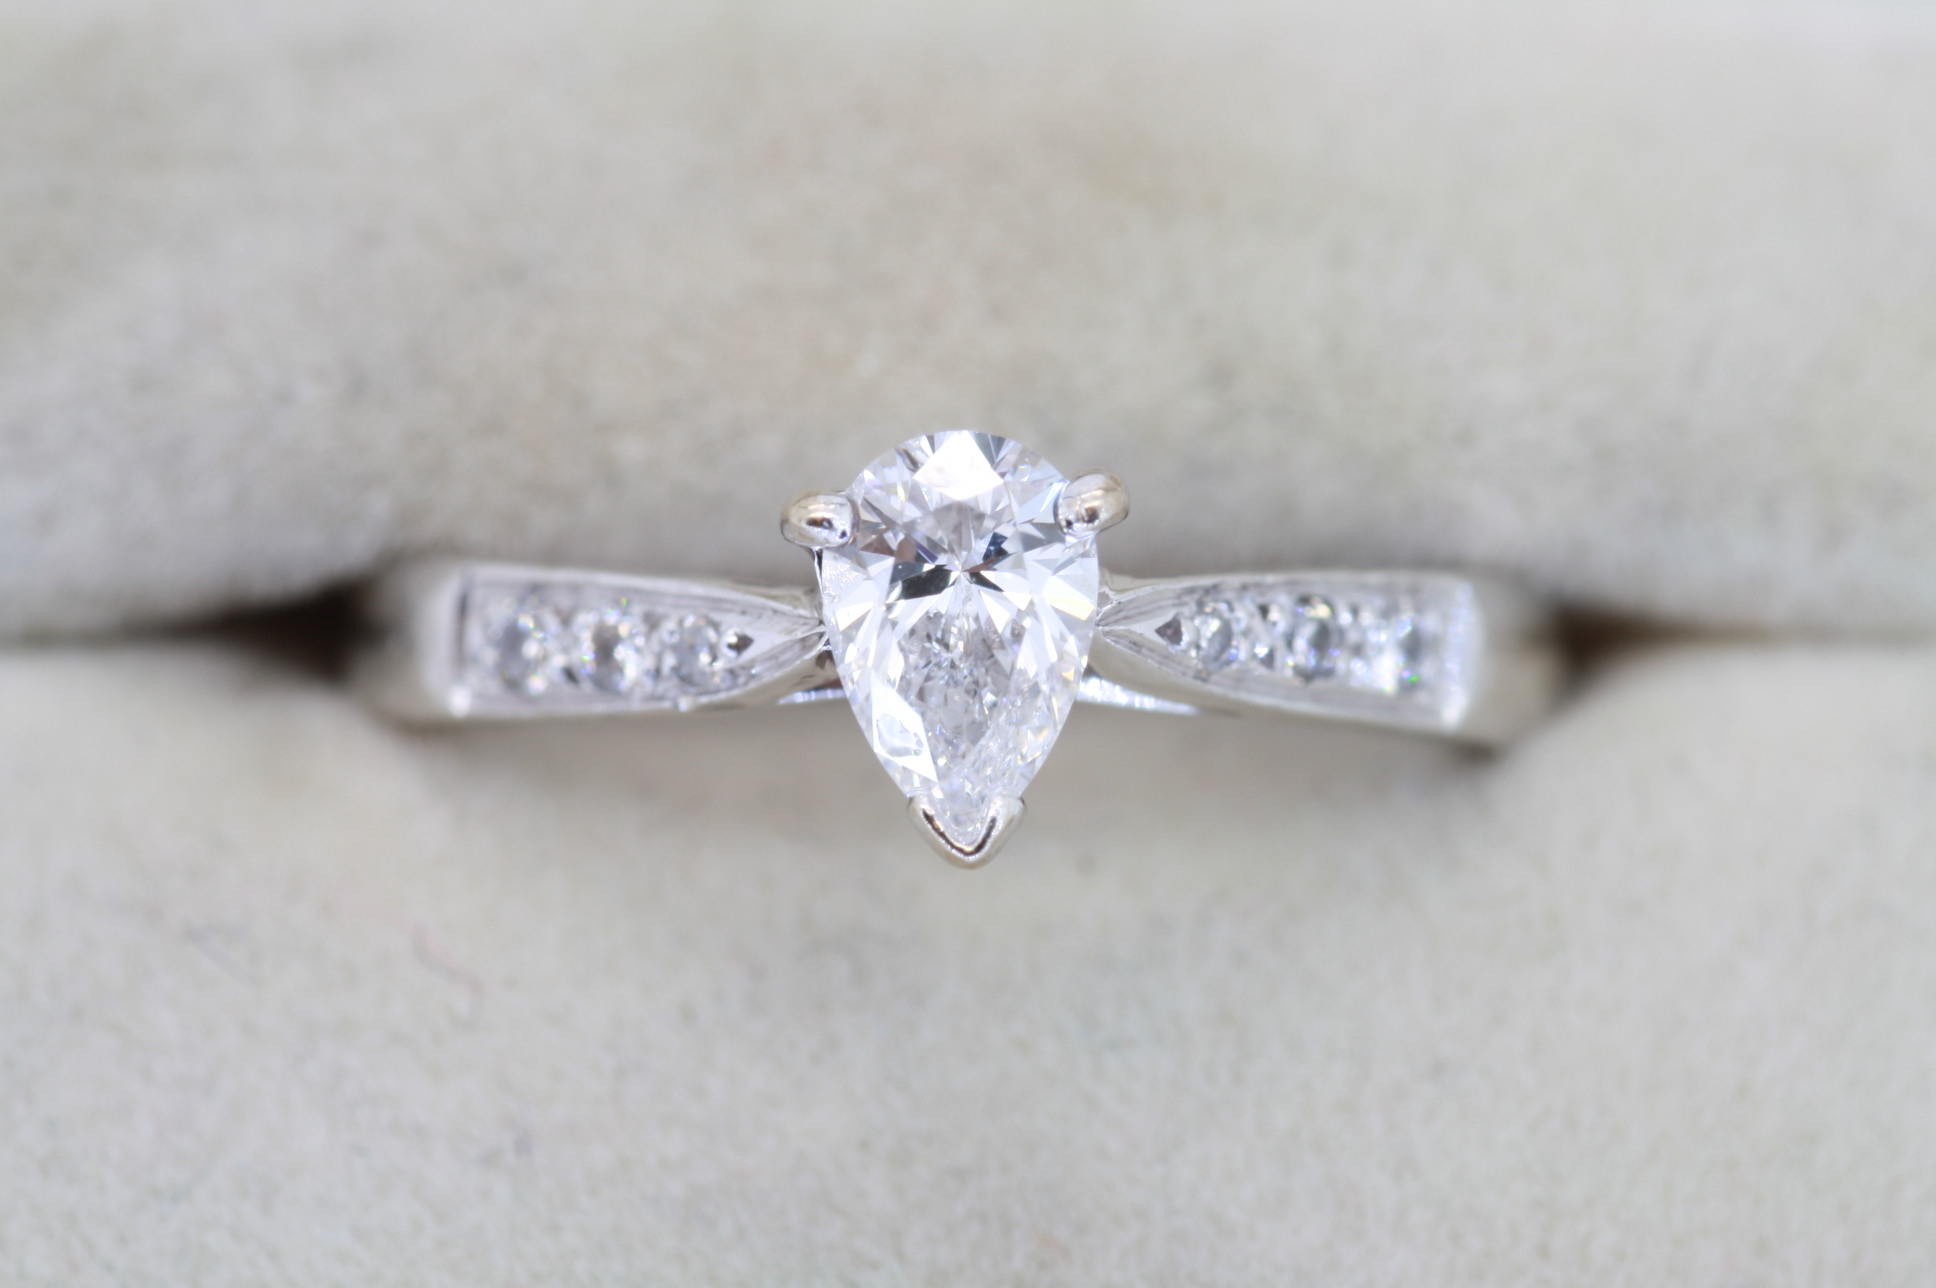 Pear Shape Diamond Engagement Ring With Pear Shaped Engagement Rings (View 7 of 25)